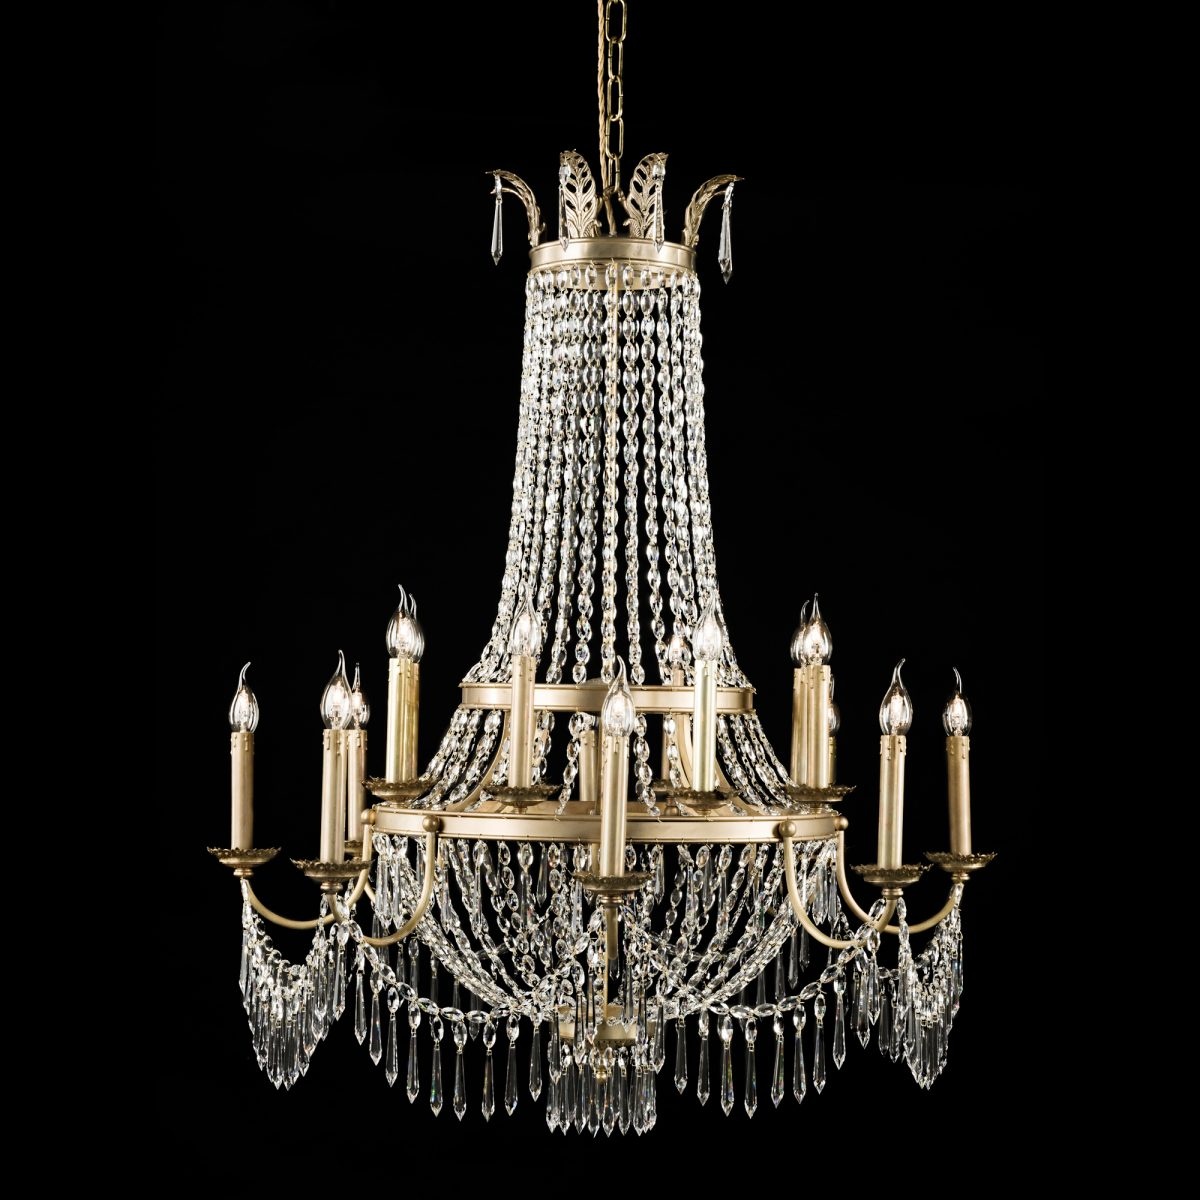 Handcrafted Lighting Designs by Badari badari Handcrafted Lighting Designs by Badari isaloni 2019 Mesmerizing Handcrafted Lighting Designs by Badari Chandelier Elegance 2017